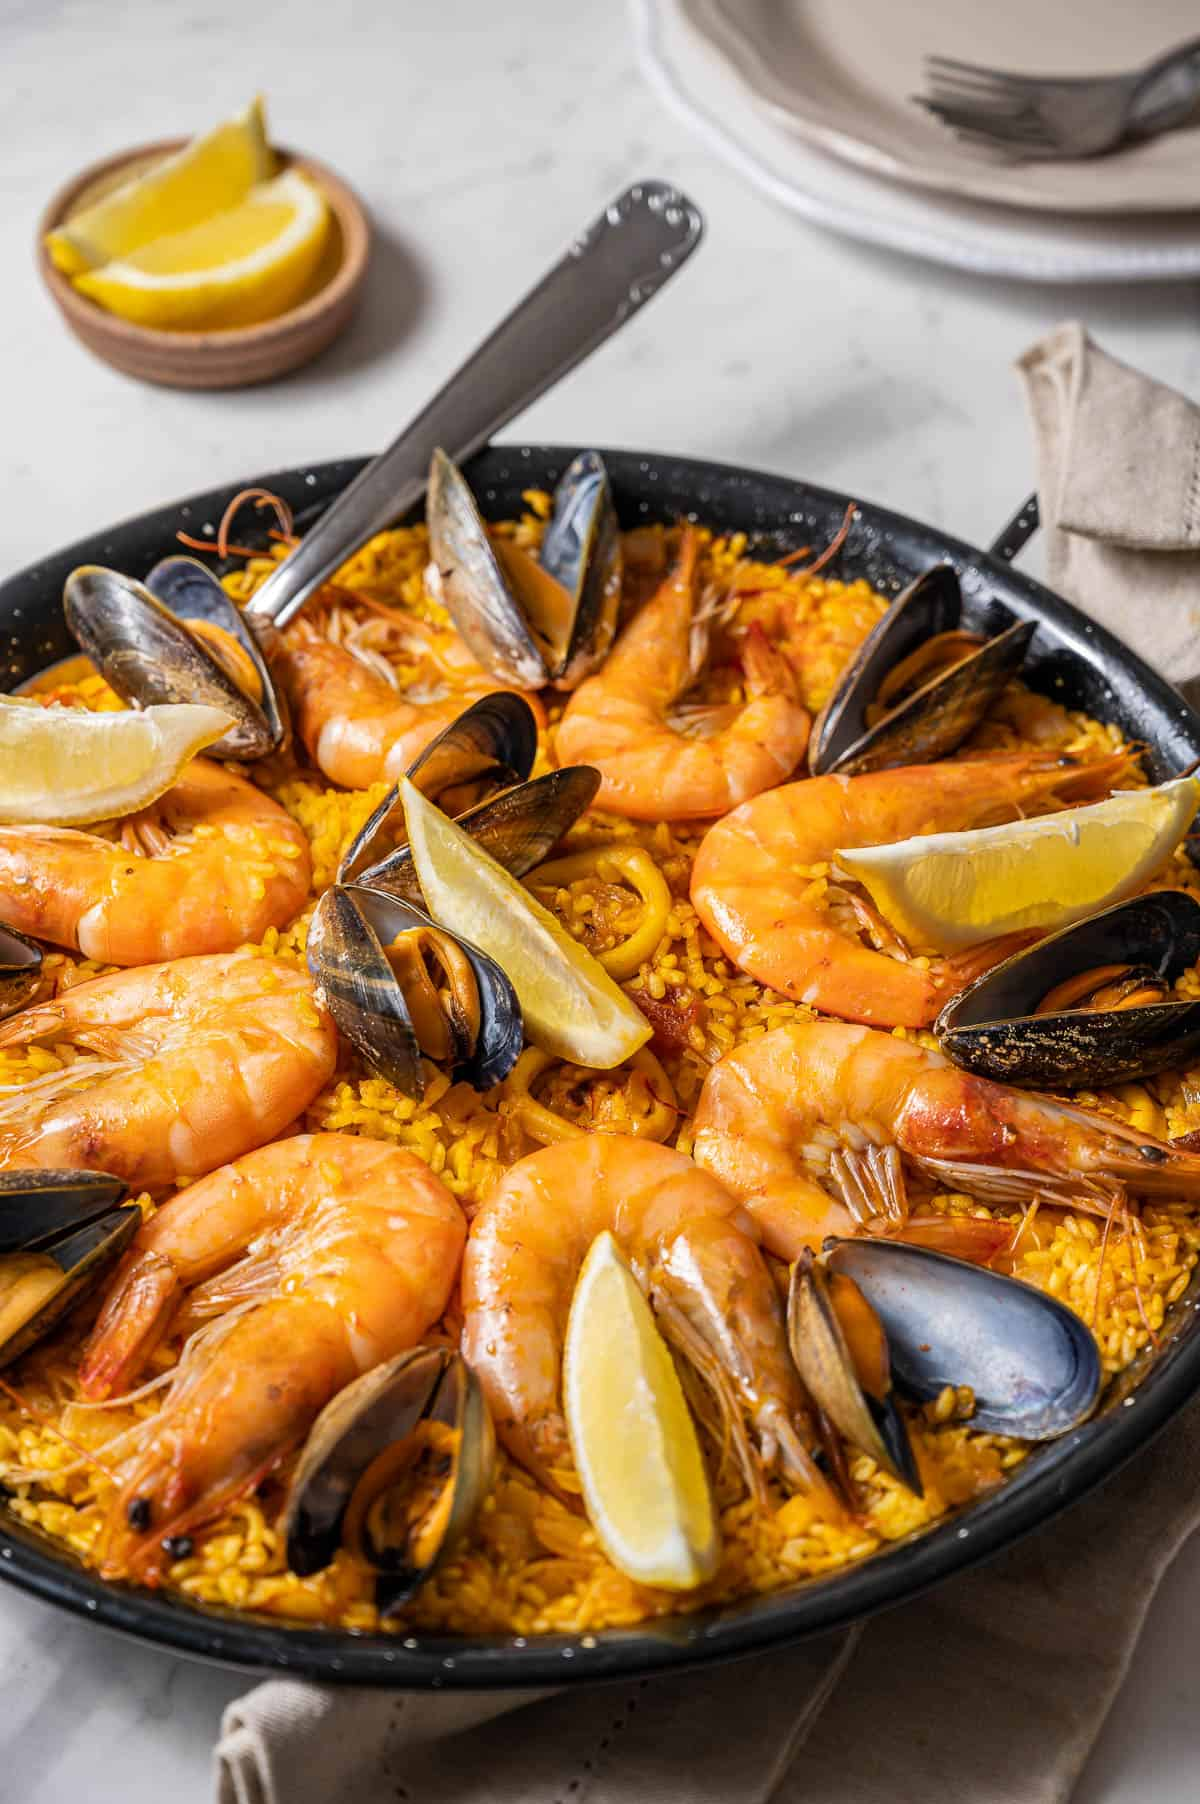 Seafood paella with prawns, mussels, calamari and lemon slices